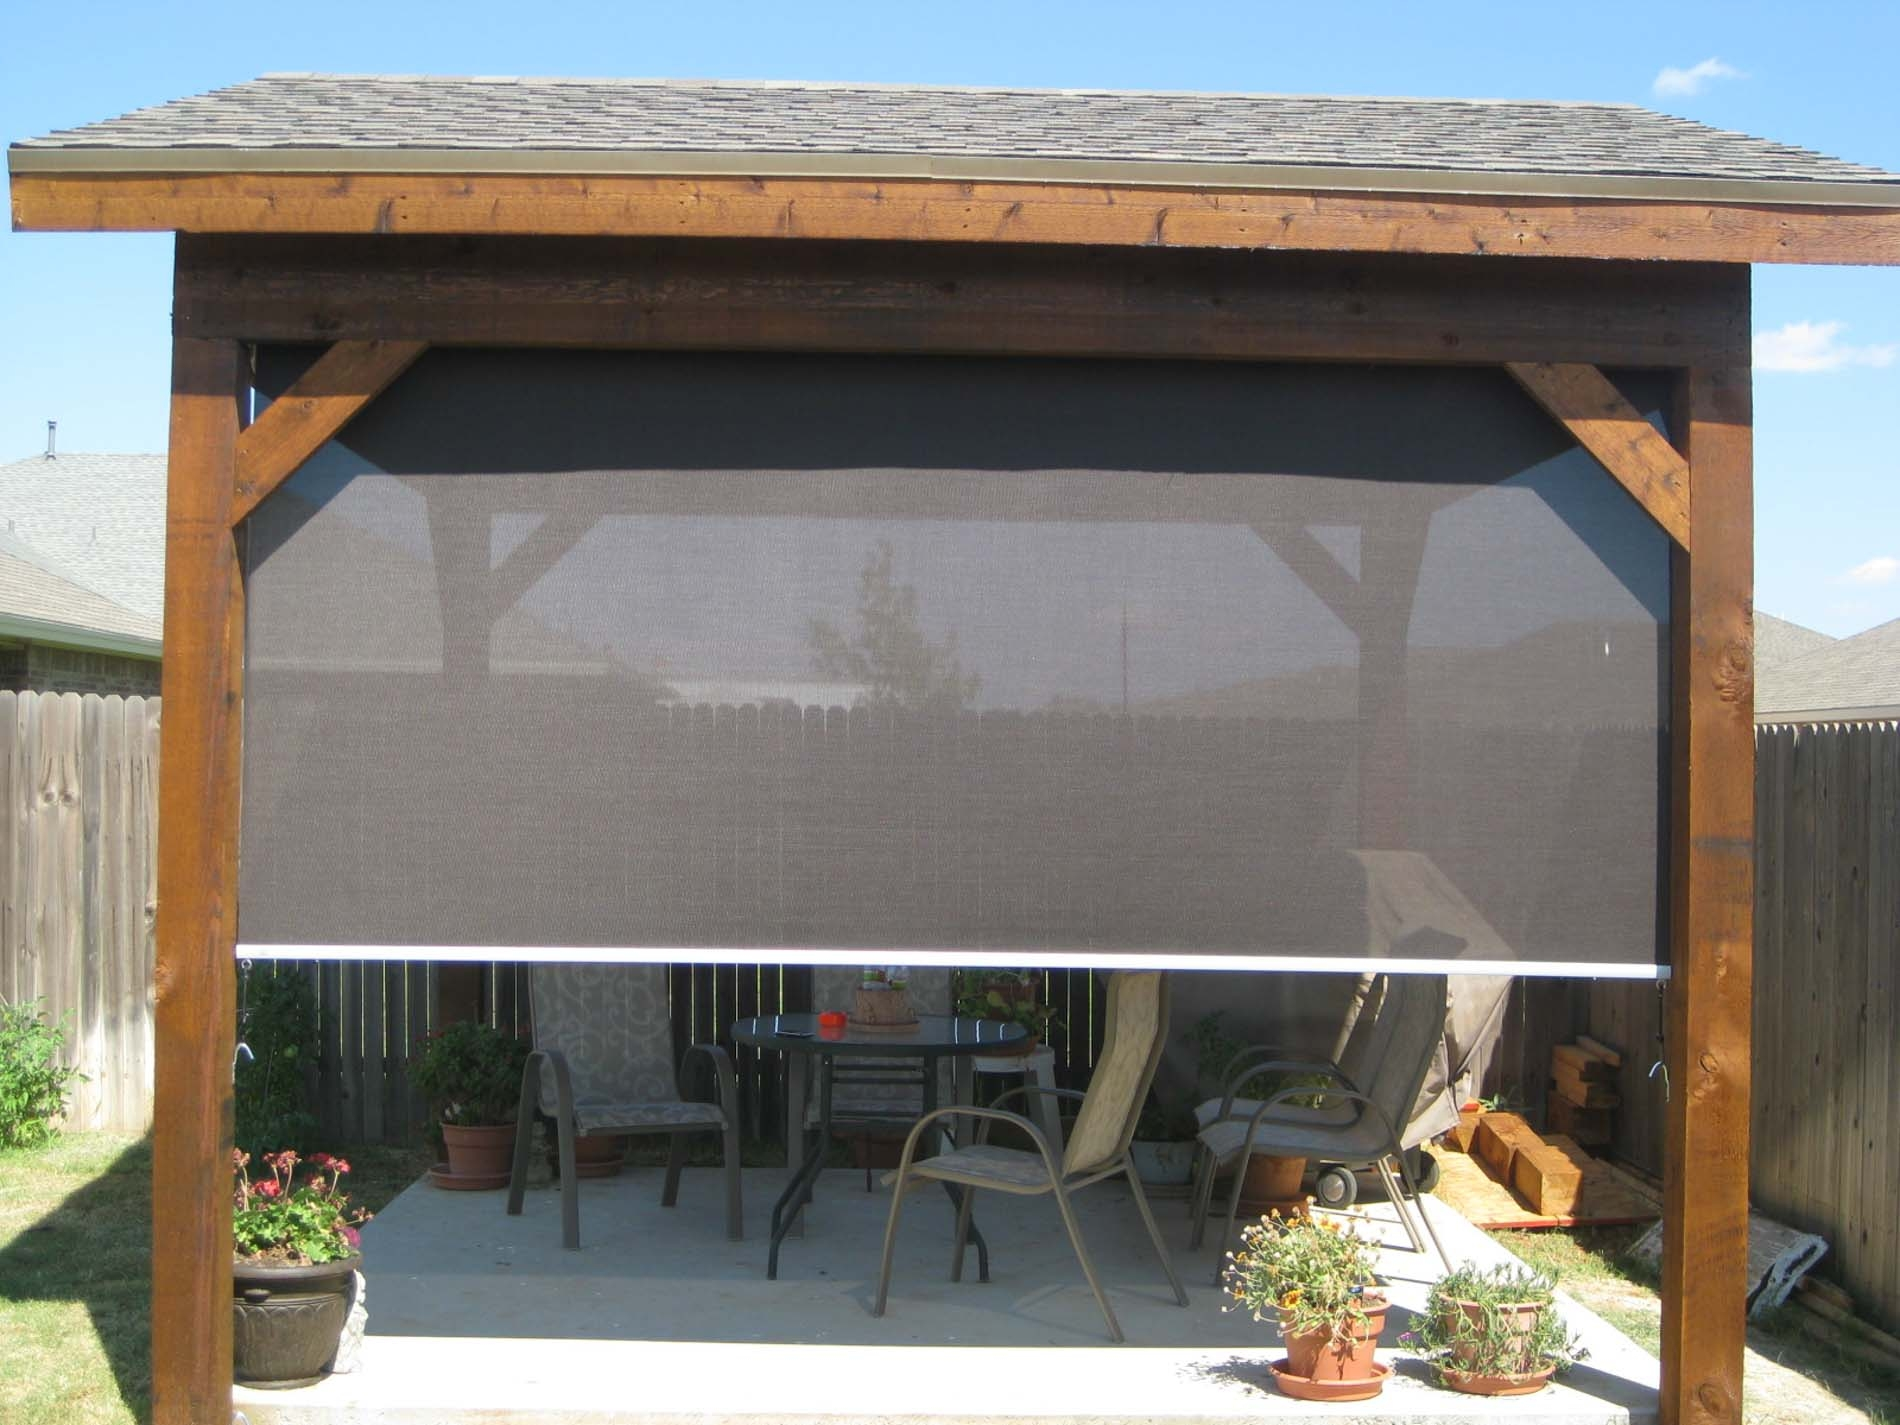 HENG FENG Outdoor Roller Shade Light Filtering UV Protection Privacy for Patio Deck Pergola 6x6 Brown